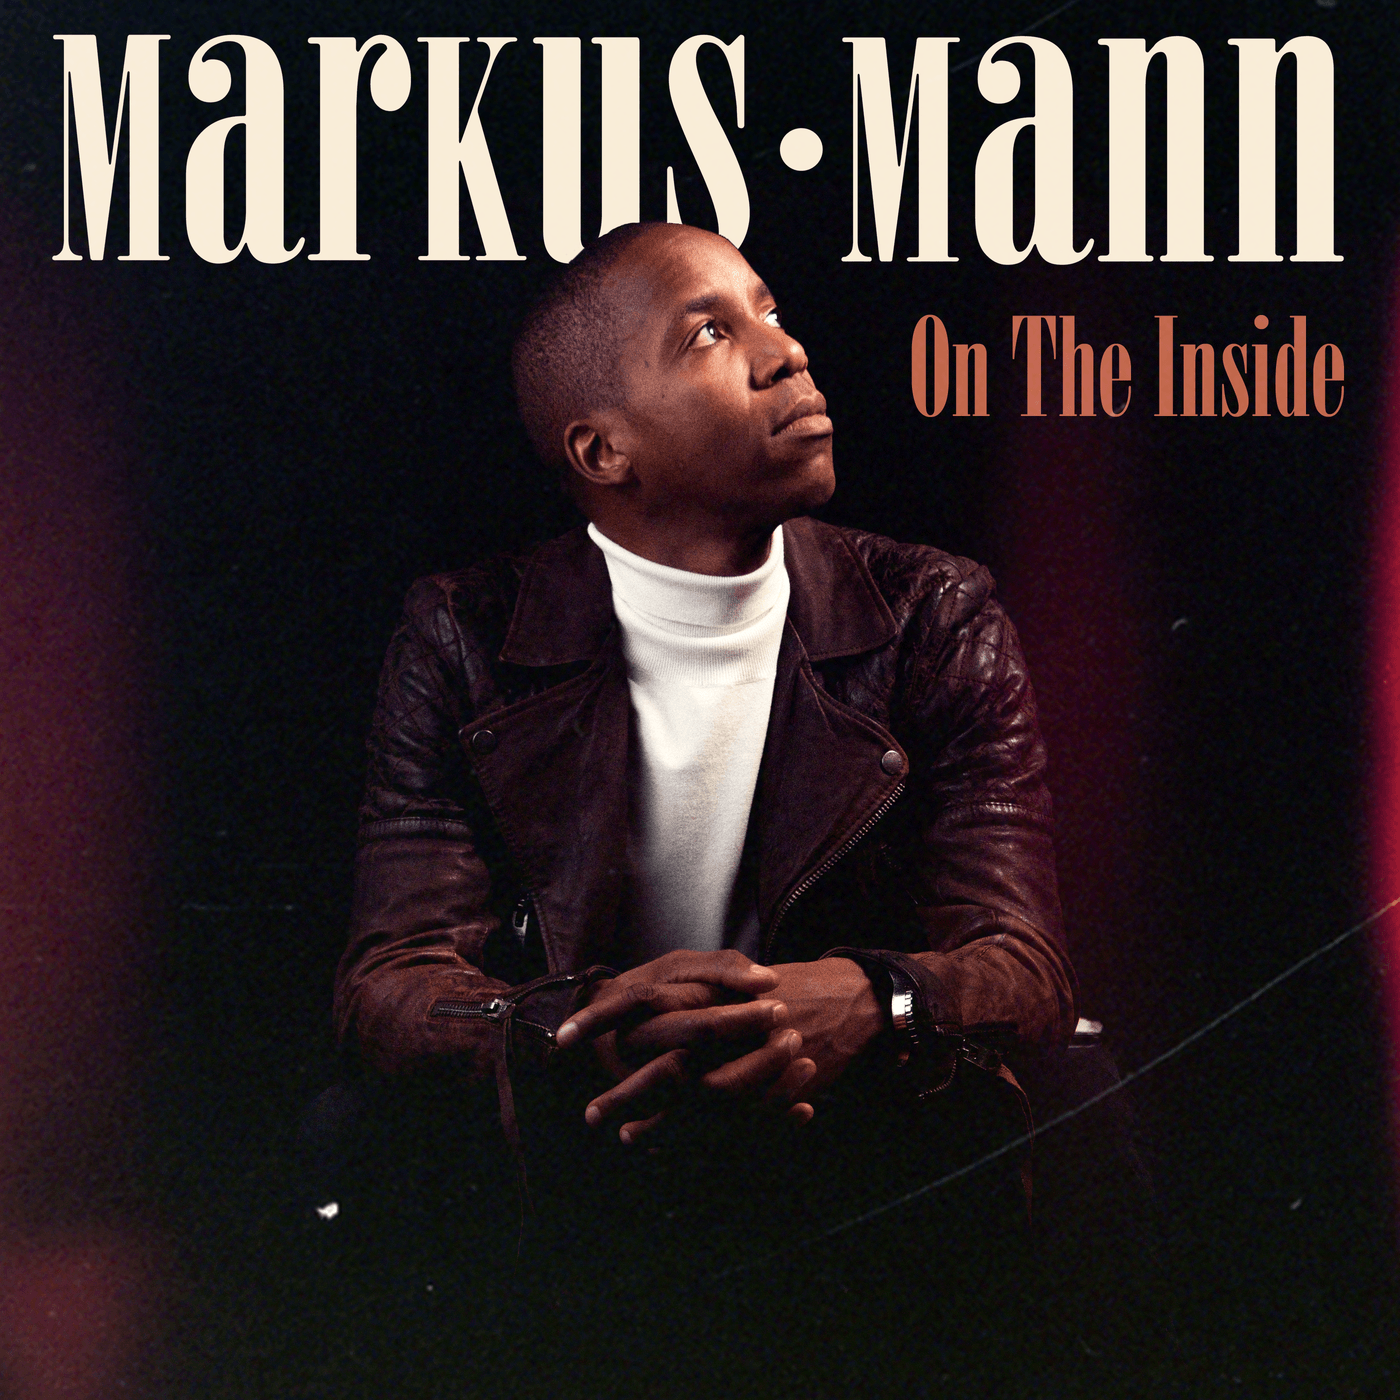 listen-on the inside-by-markus mann-indie music-new music-indie pop-music -wolf in a suit-wolfinasuit